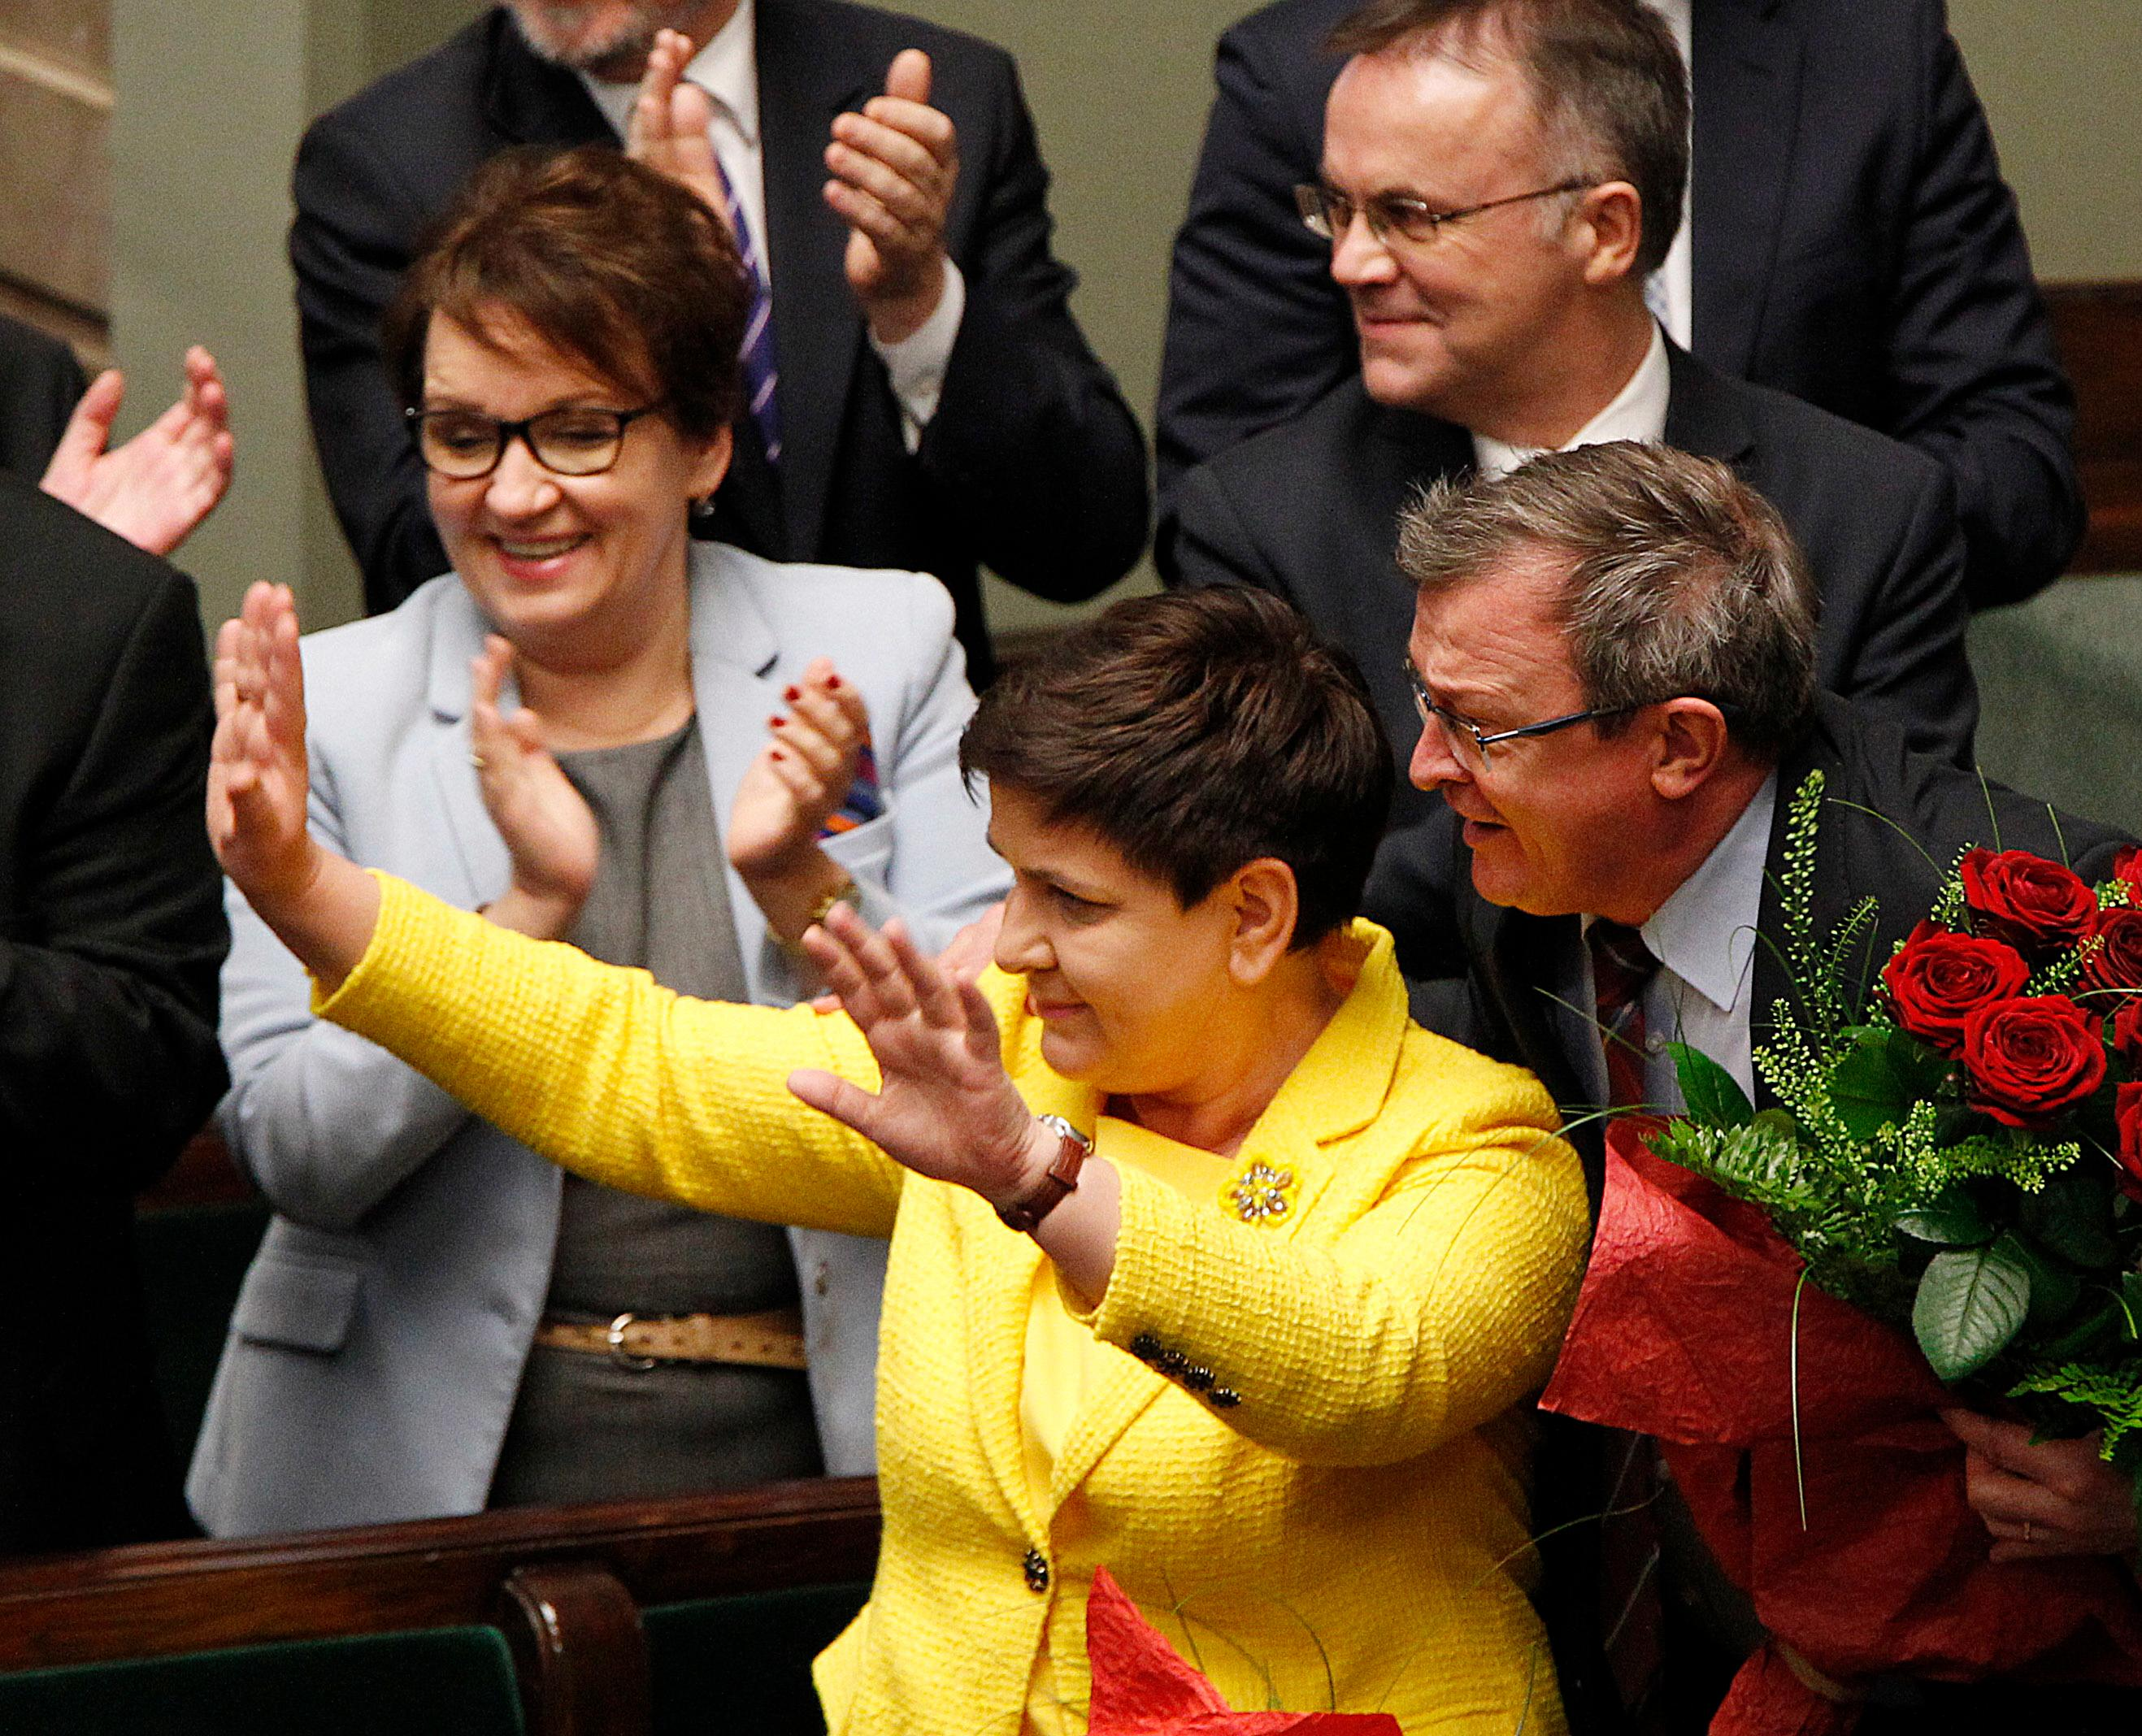 Poland's Prime Minister Beata Szydlo, left, rejoices after she and her government survived opposition's vote of no-confidence in the parliament in Warsaw, Poland, Thursday, Dec. 7, 2017. Szydlo, however, is at the center of speculation that she and some of her ministers will be replaced in a government reshuffle in the near future. (AP Photo/Czarek Sokolowski)